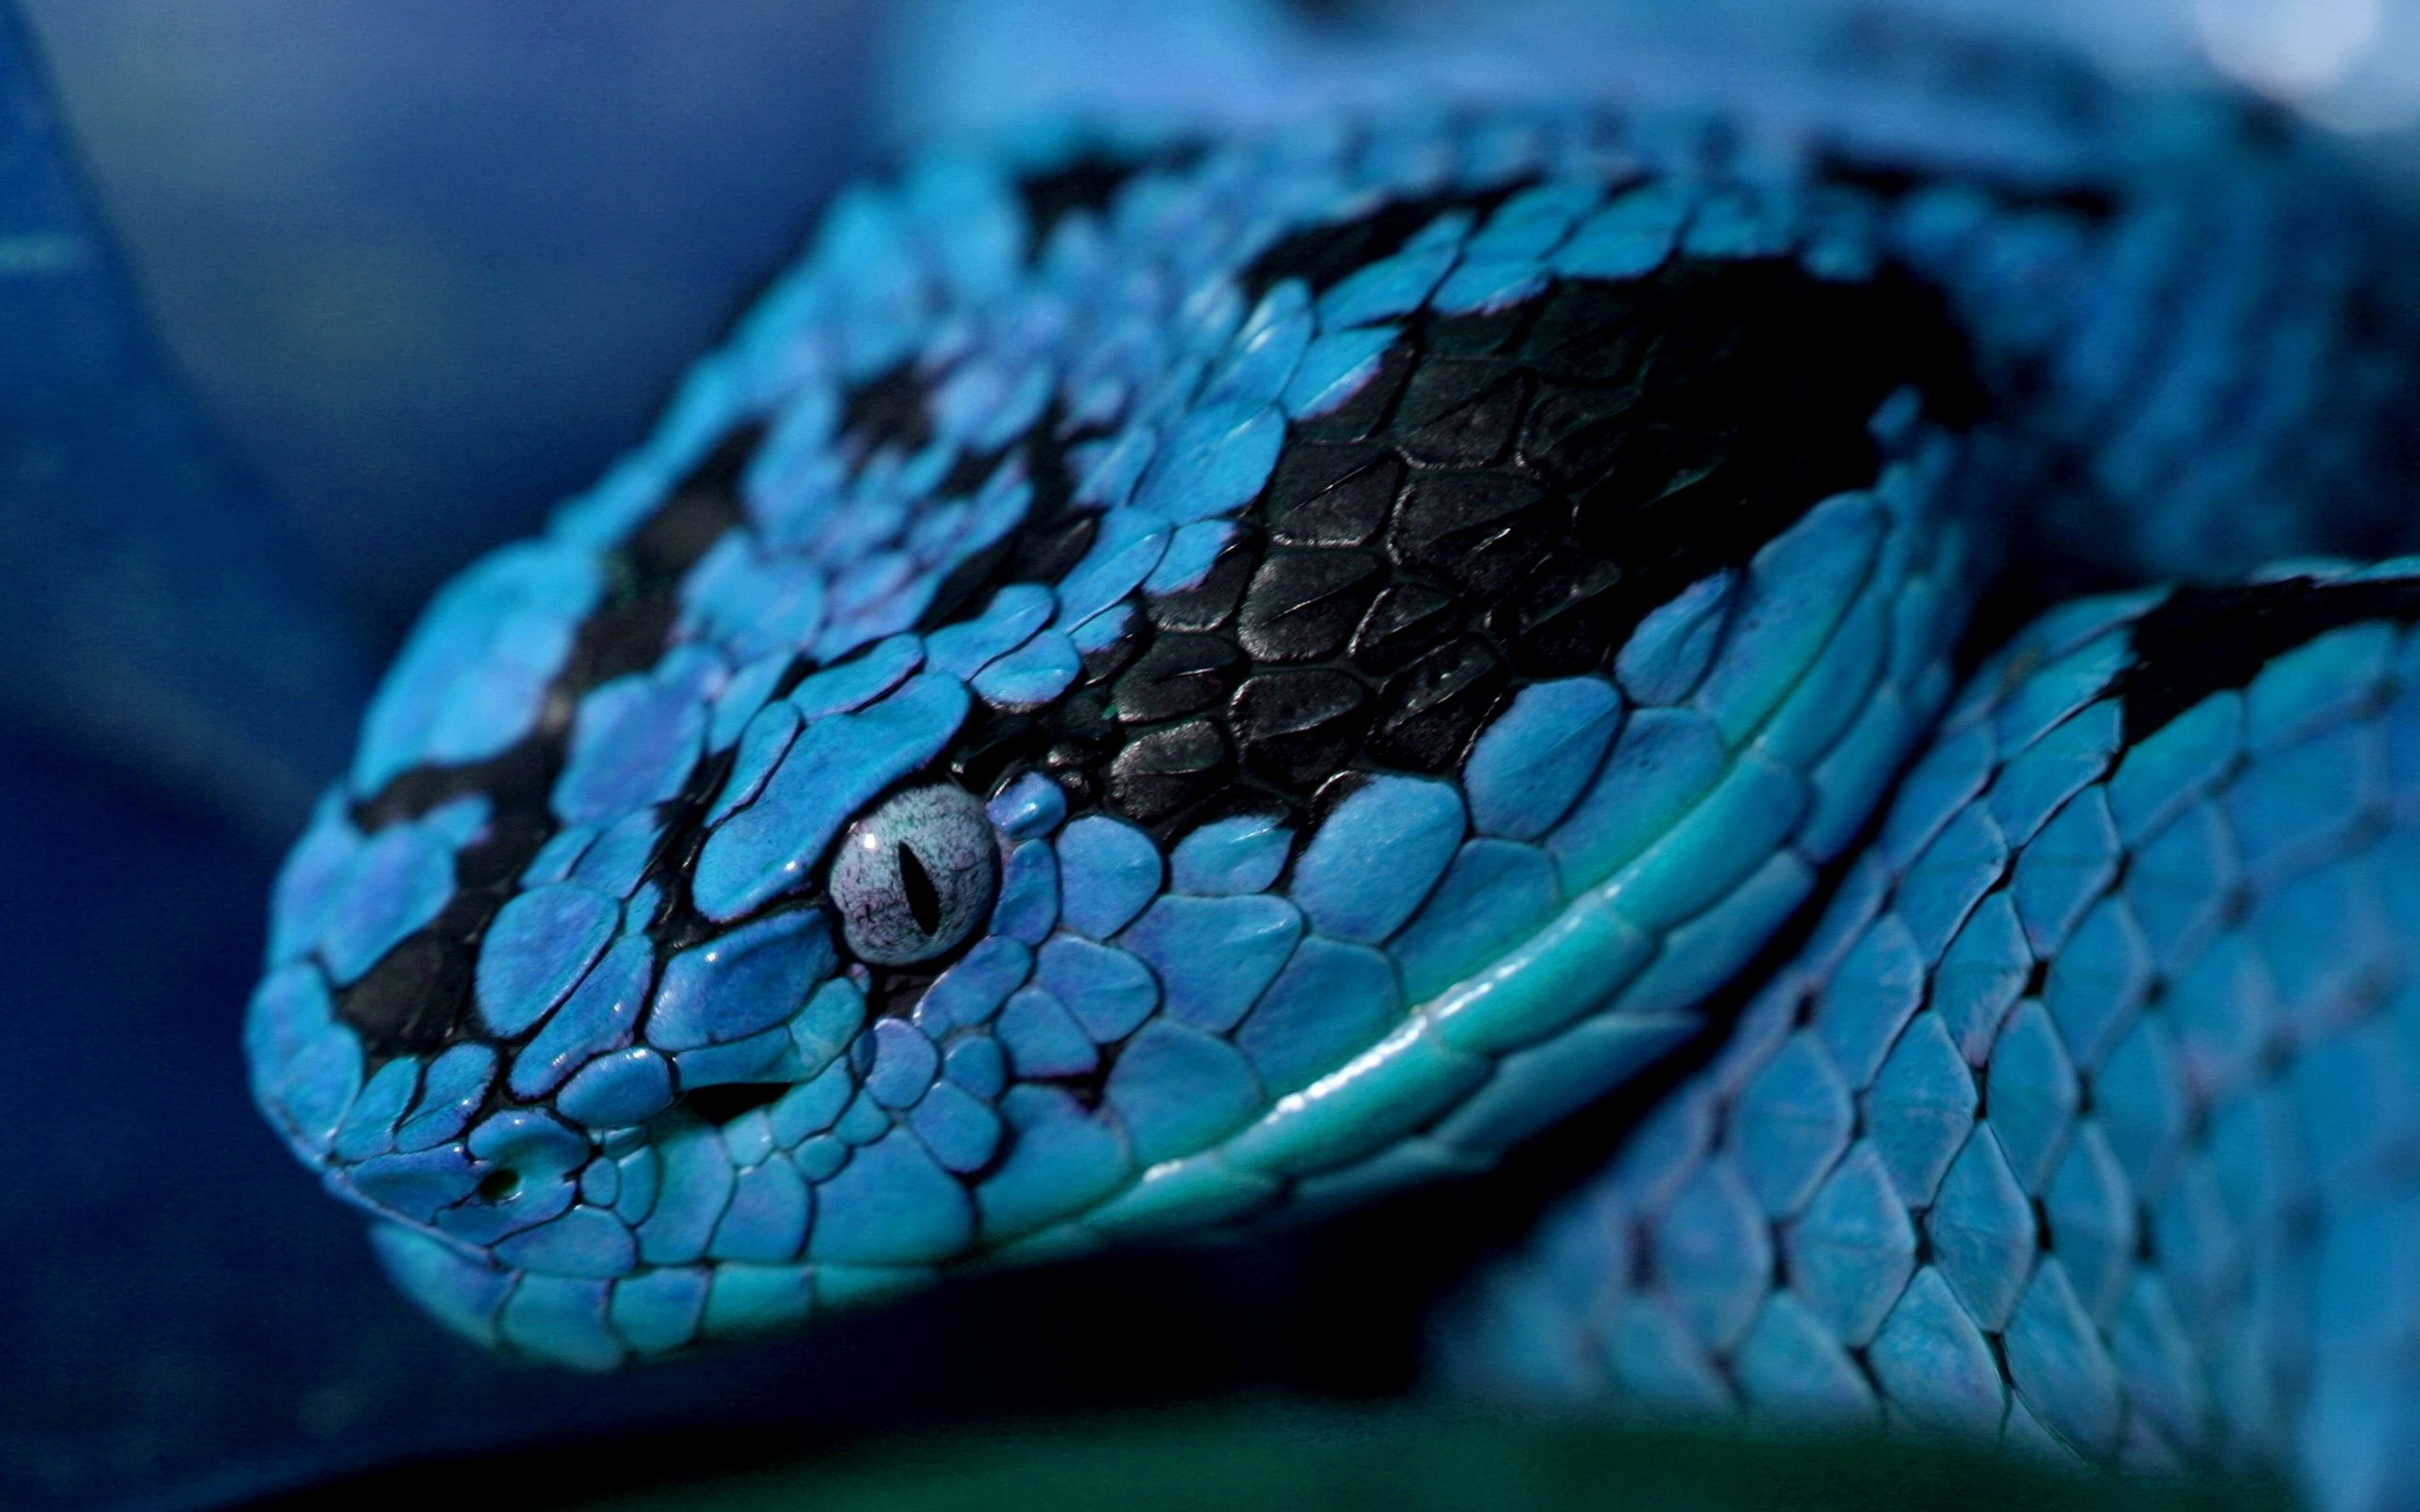 blue snake Is this Snake images, Colorful